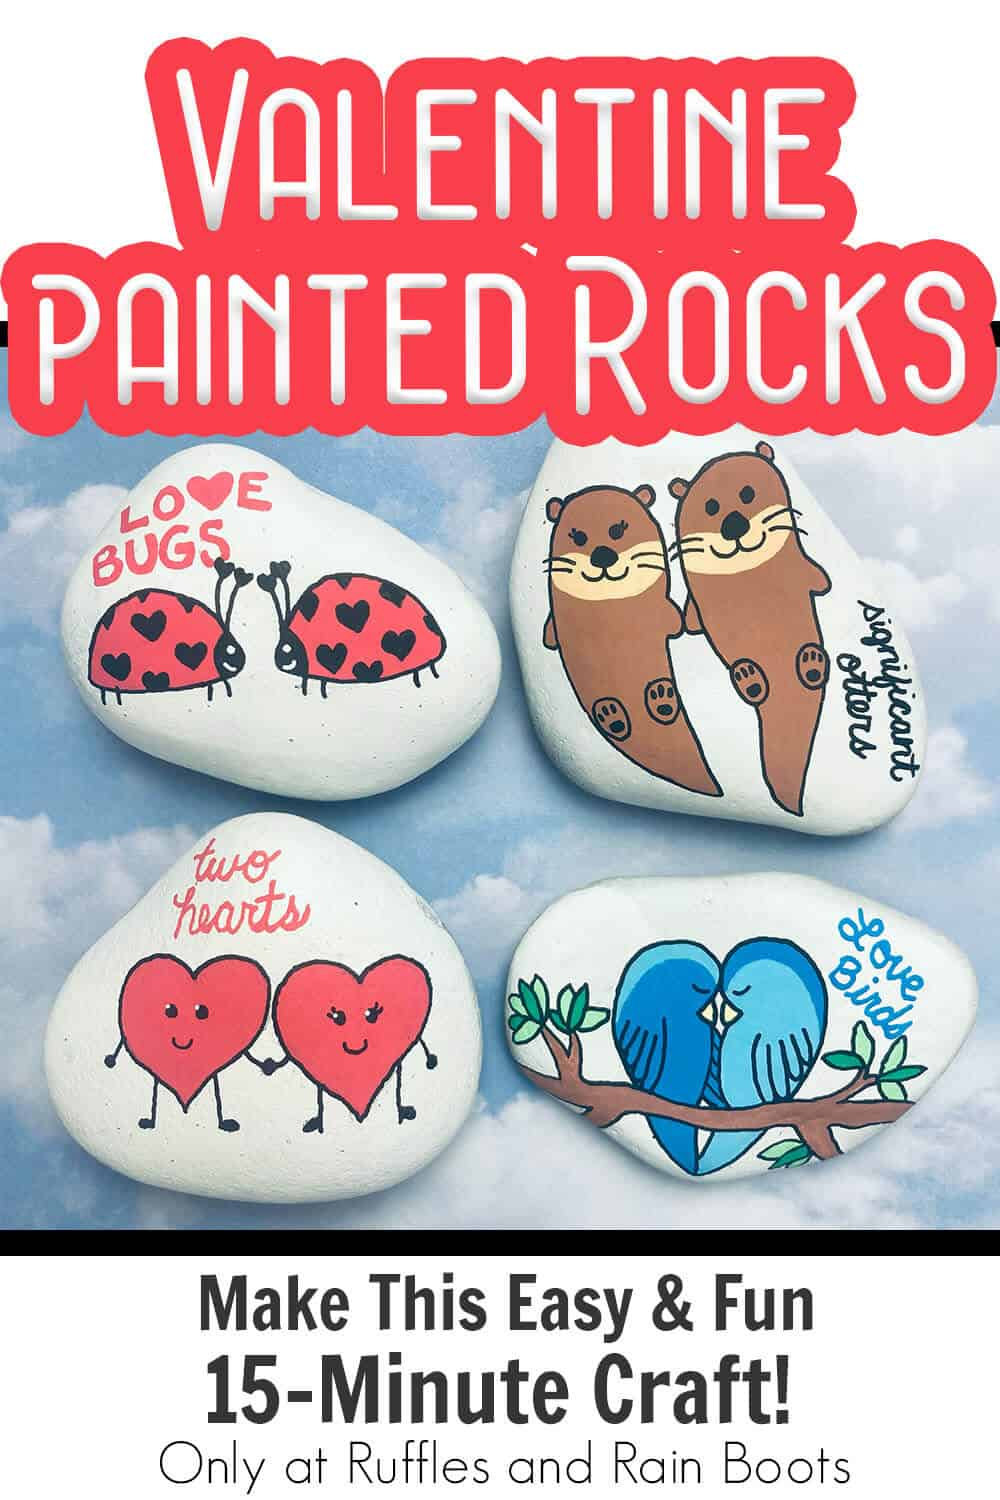 diy rock painting valentines with text which reads valentine painted rocks make this easy & fun 15-minute craft!